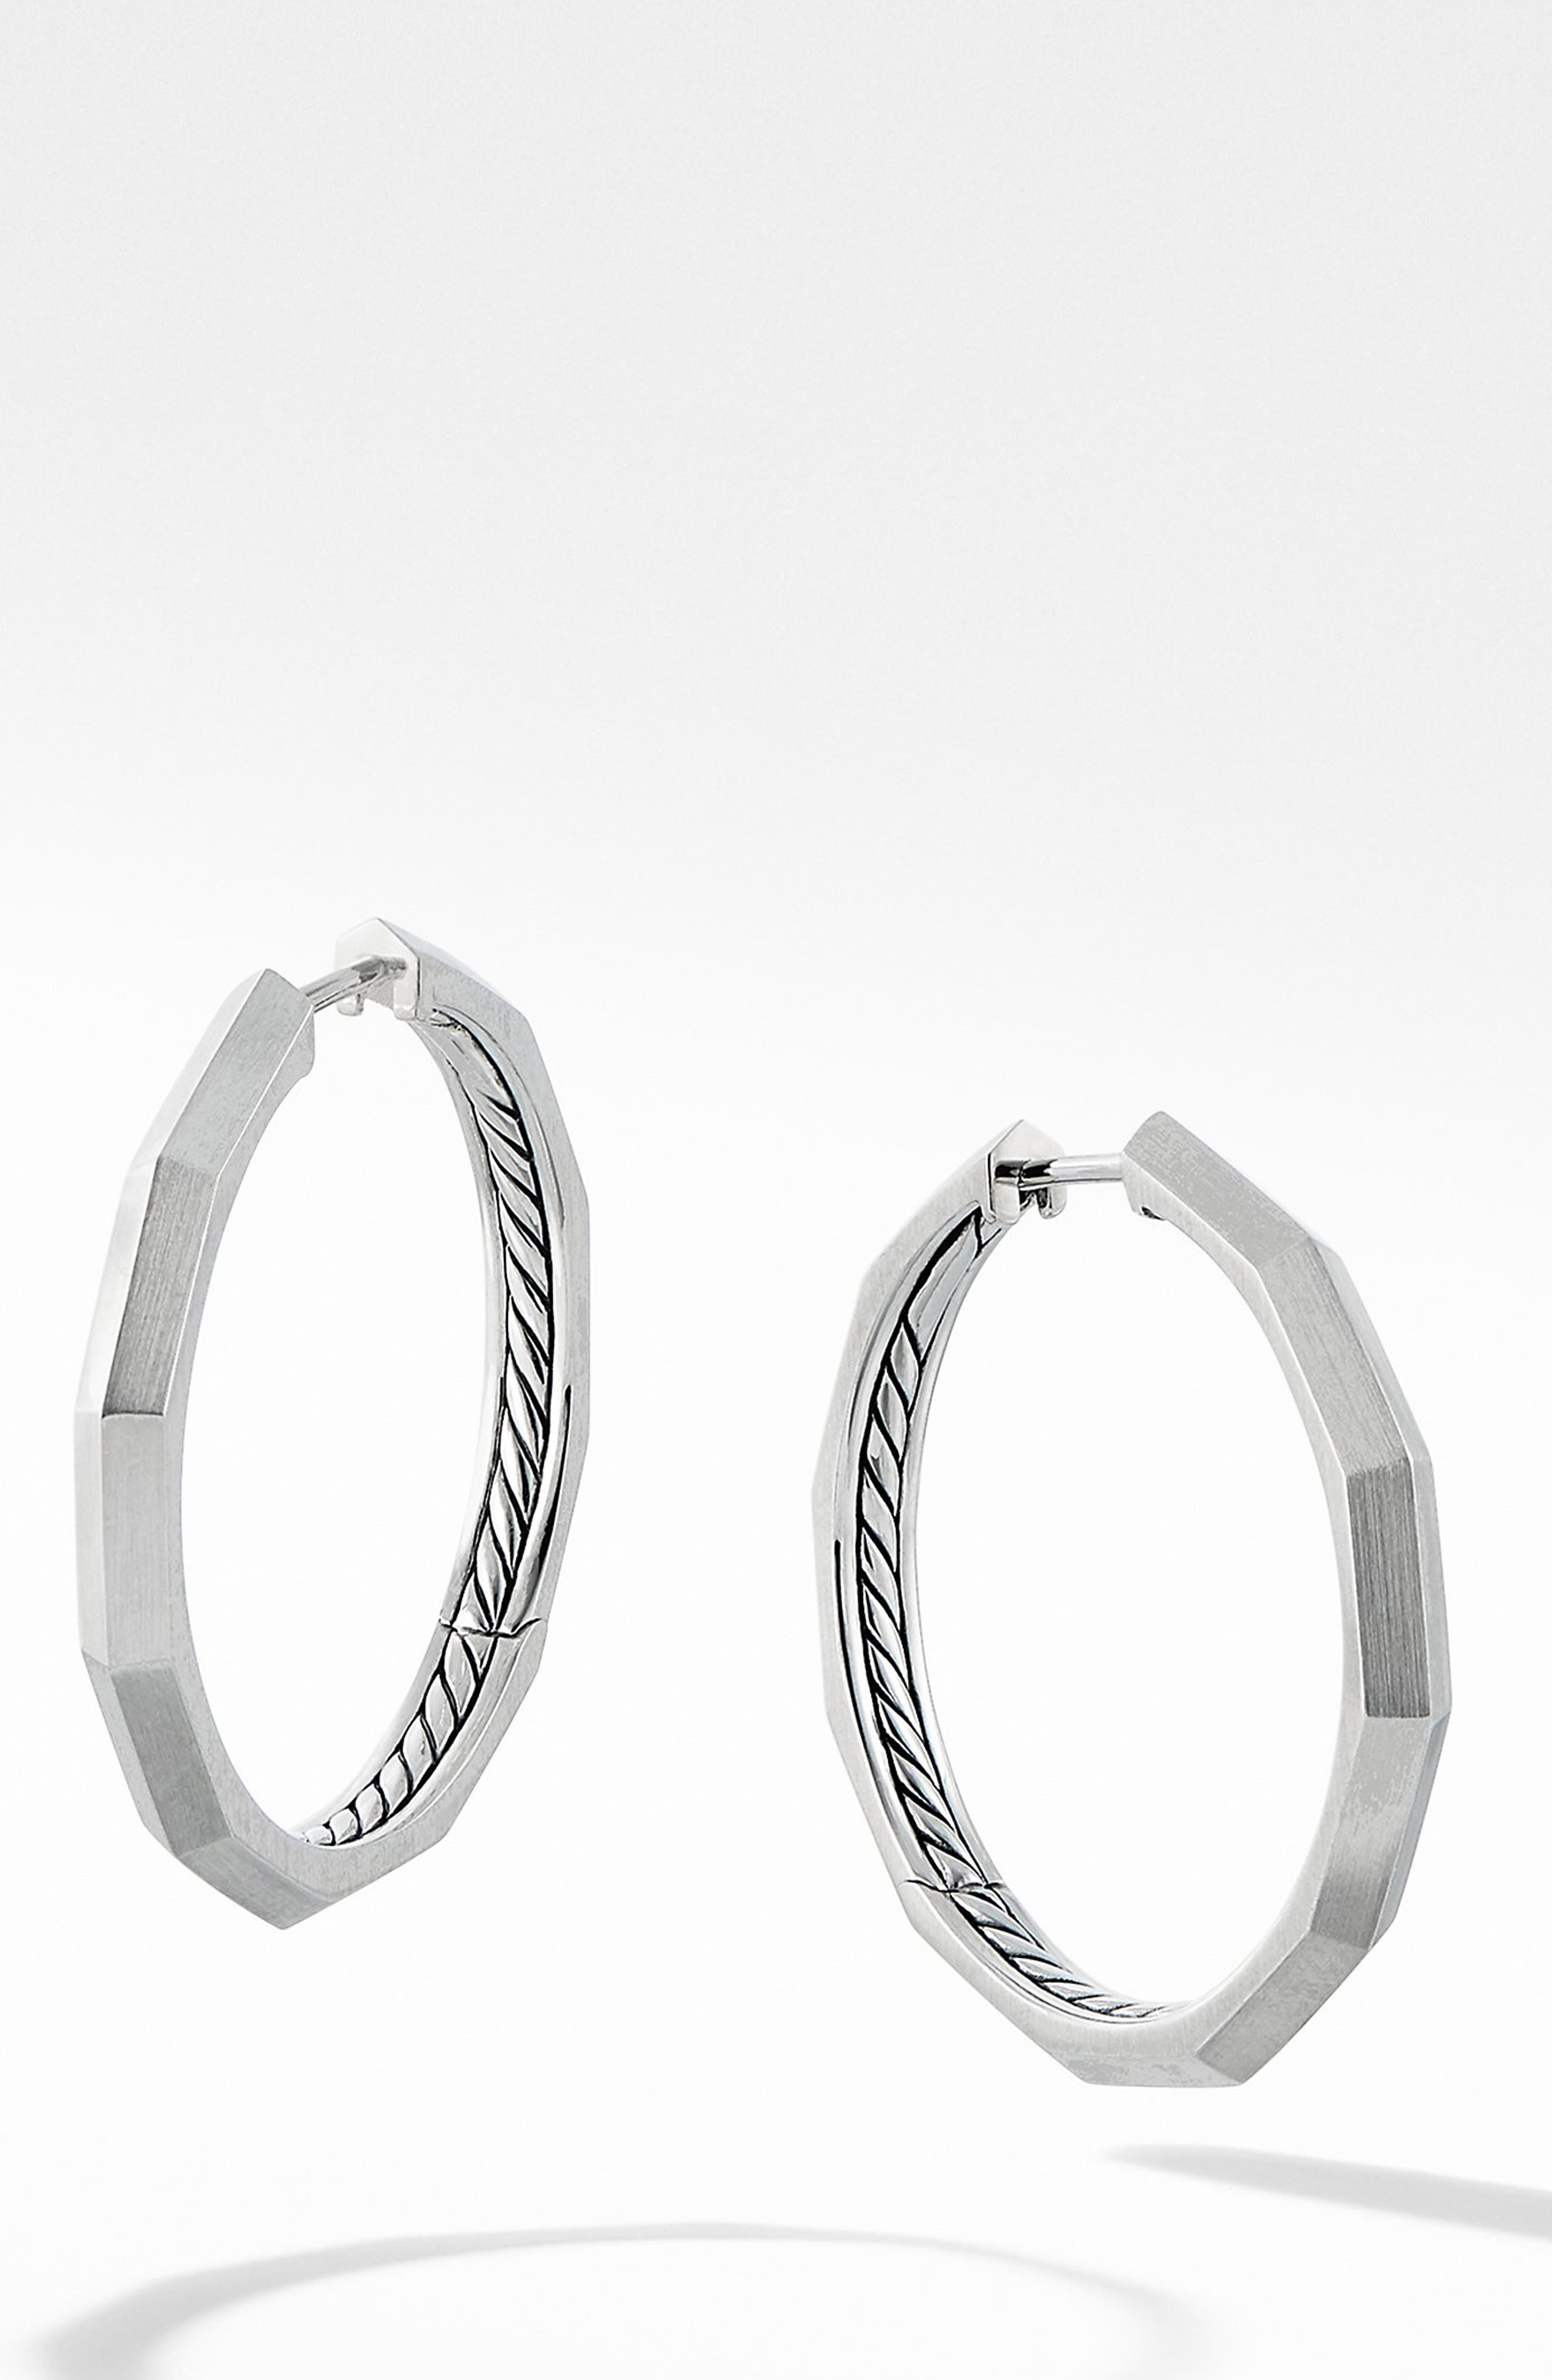 Stax Faceted Hoop Earrings,                             Main thumbnail 1, color,                             SILVER